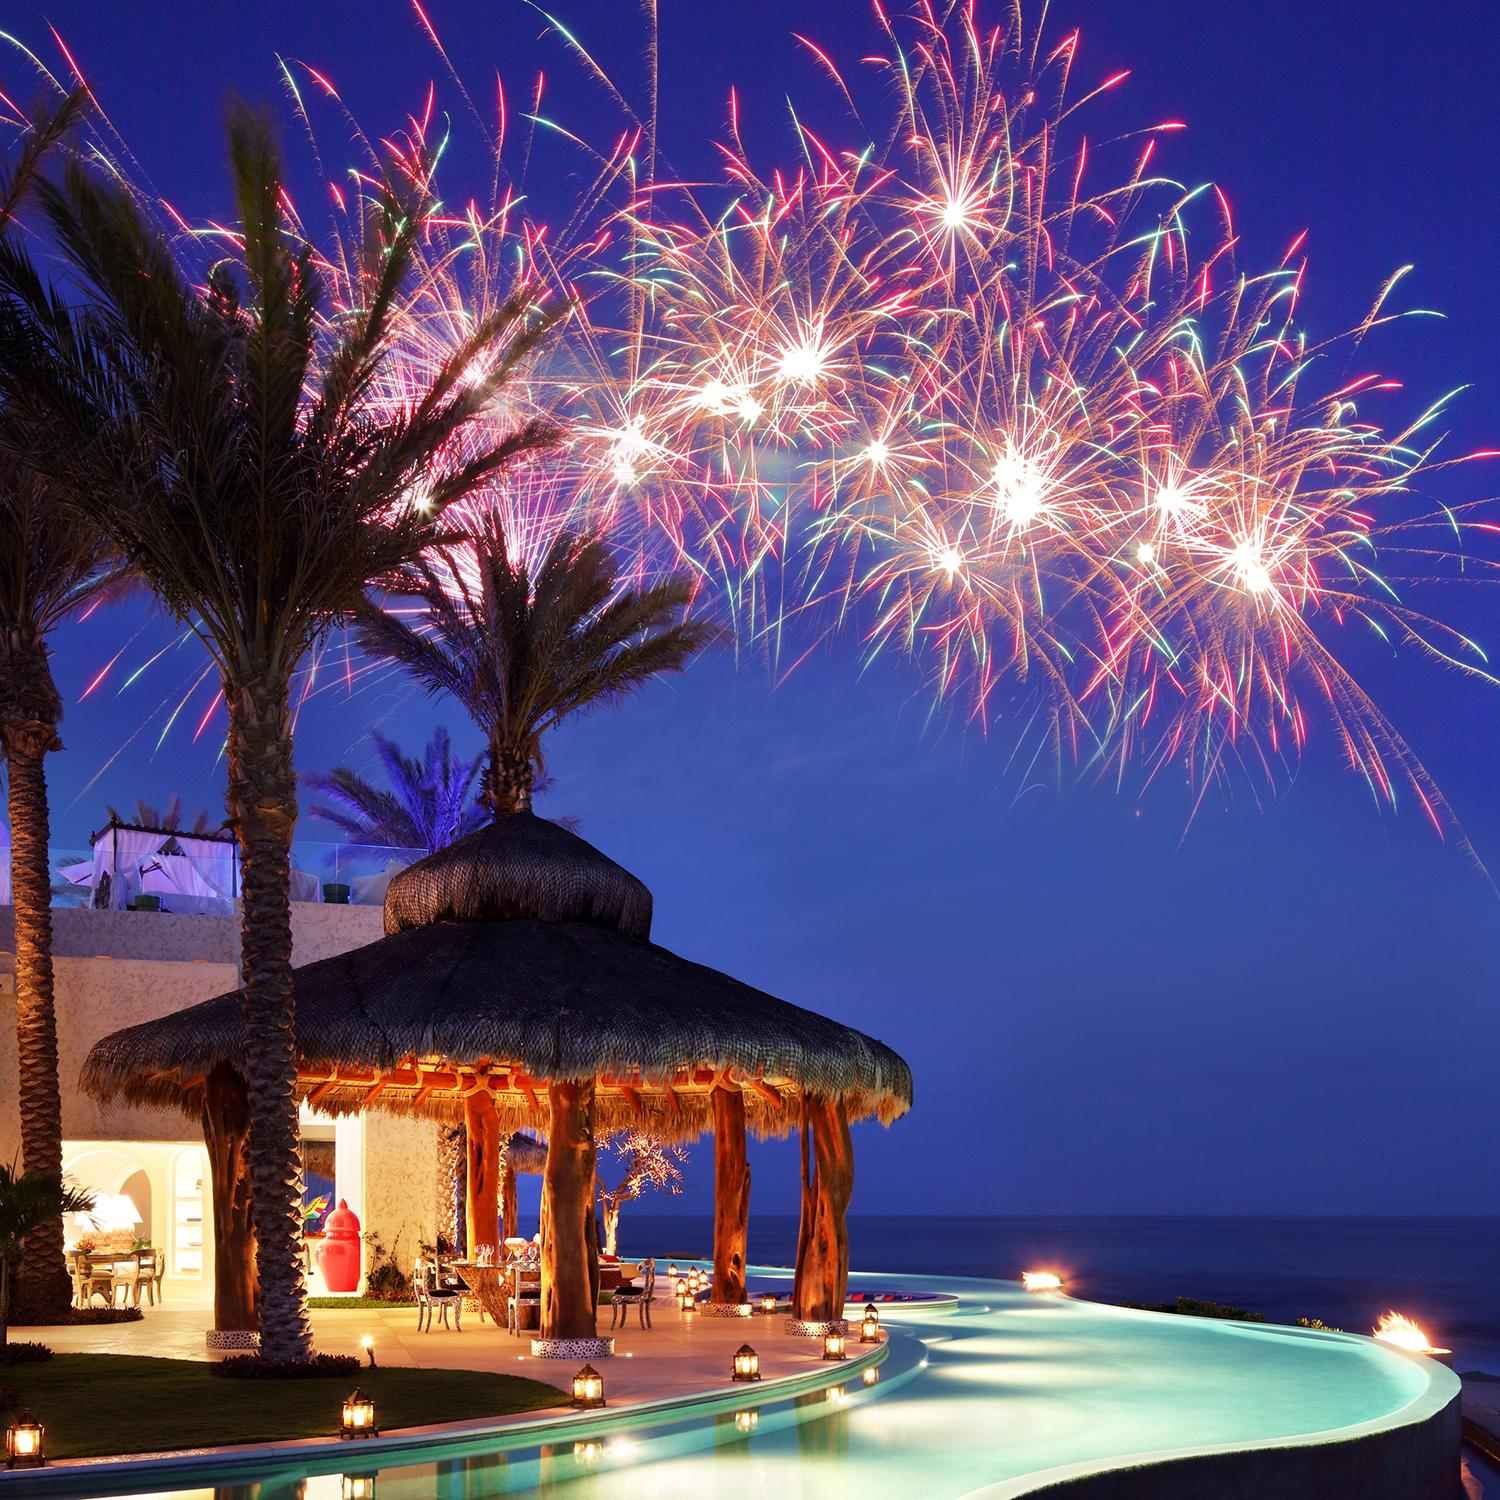 2.Unique-Hotel-Experiences-Create-Your-Own-Fireworks-2